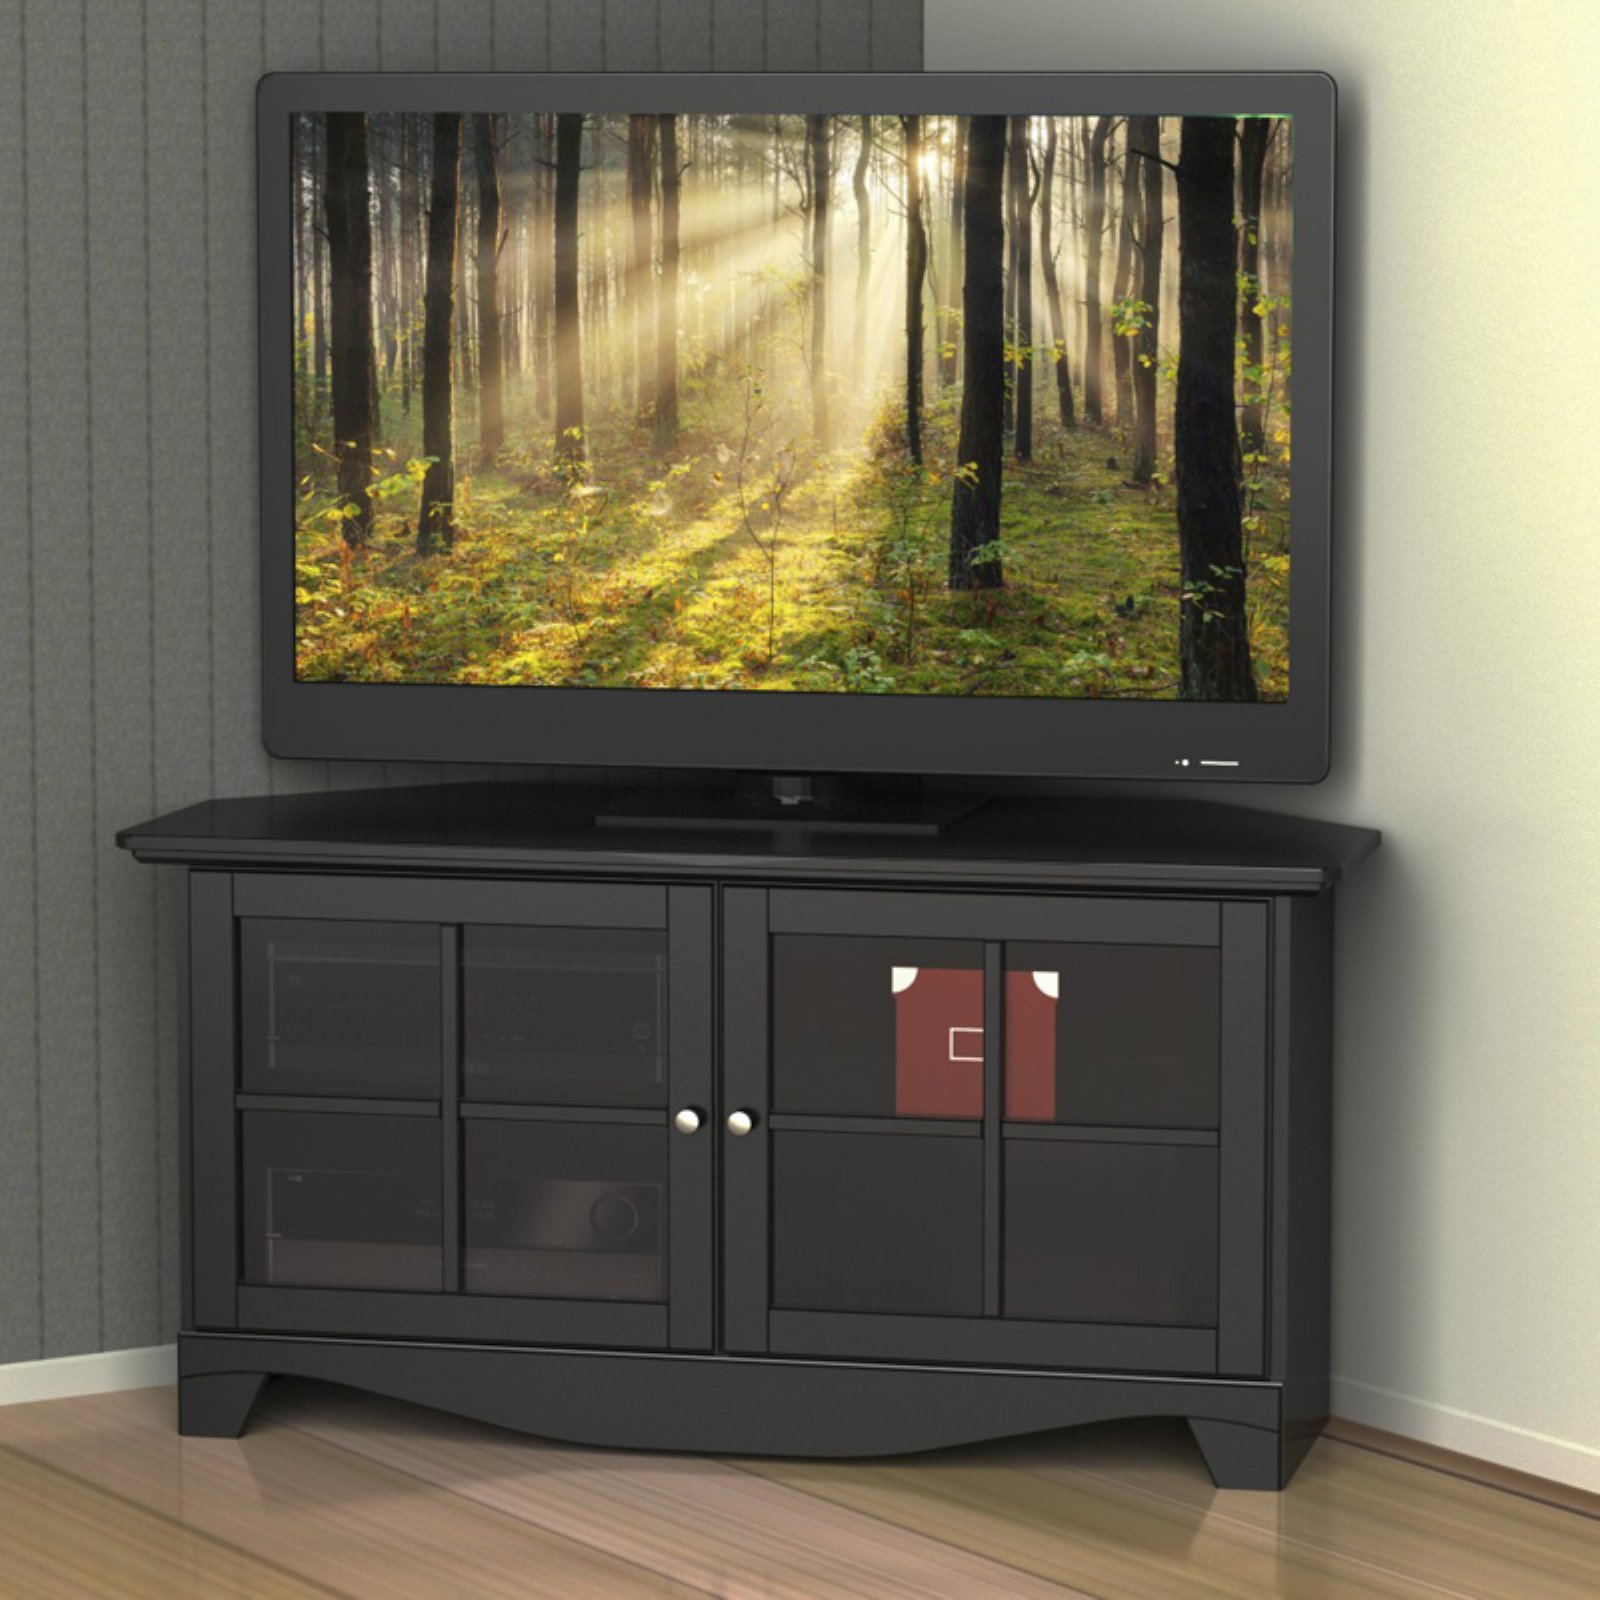 Nexera Pinnacle Black 2-Door Corner TV Stand for TVs up to 49""